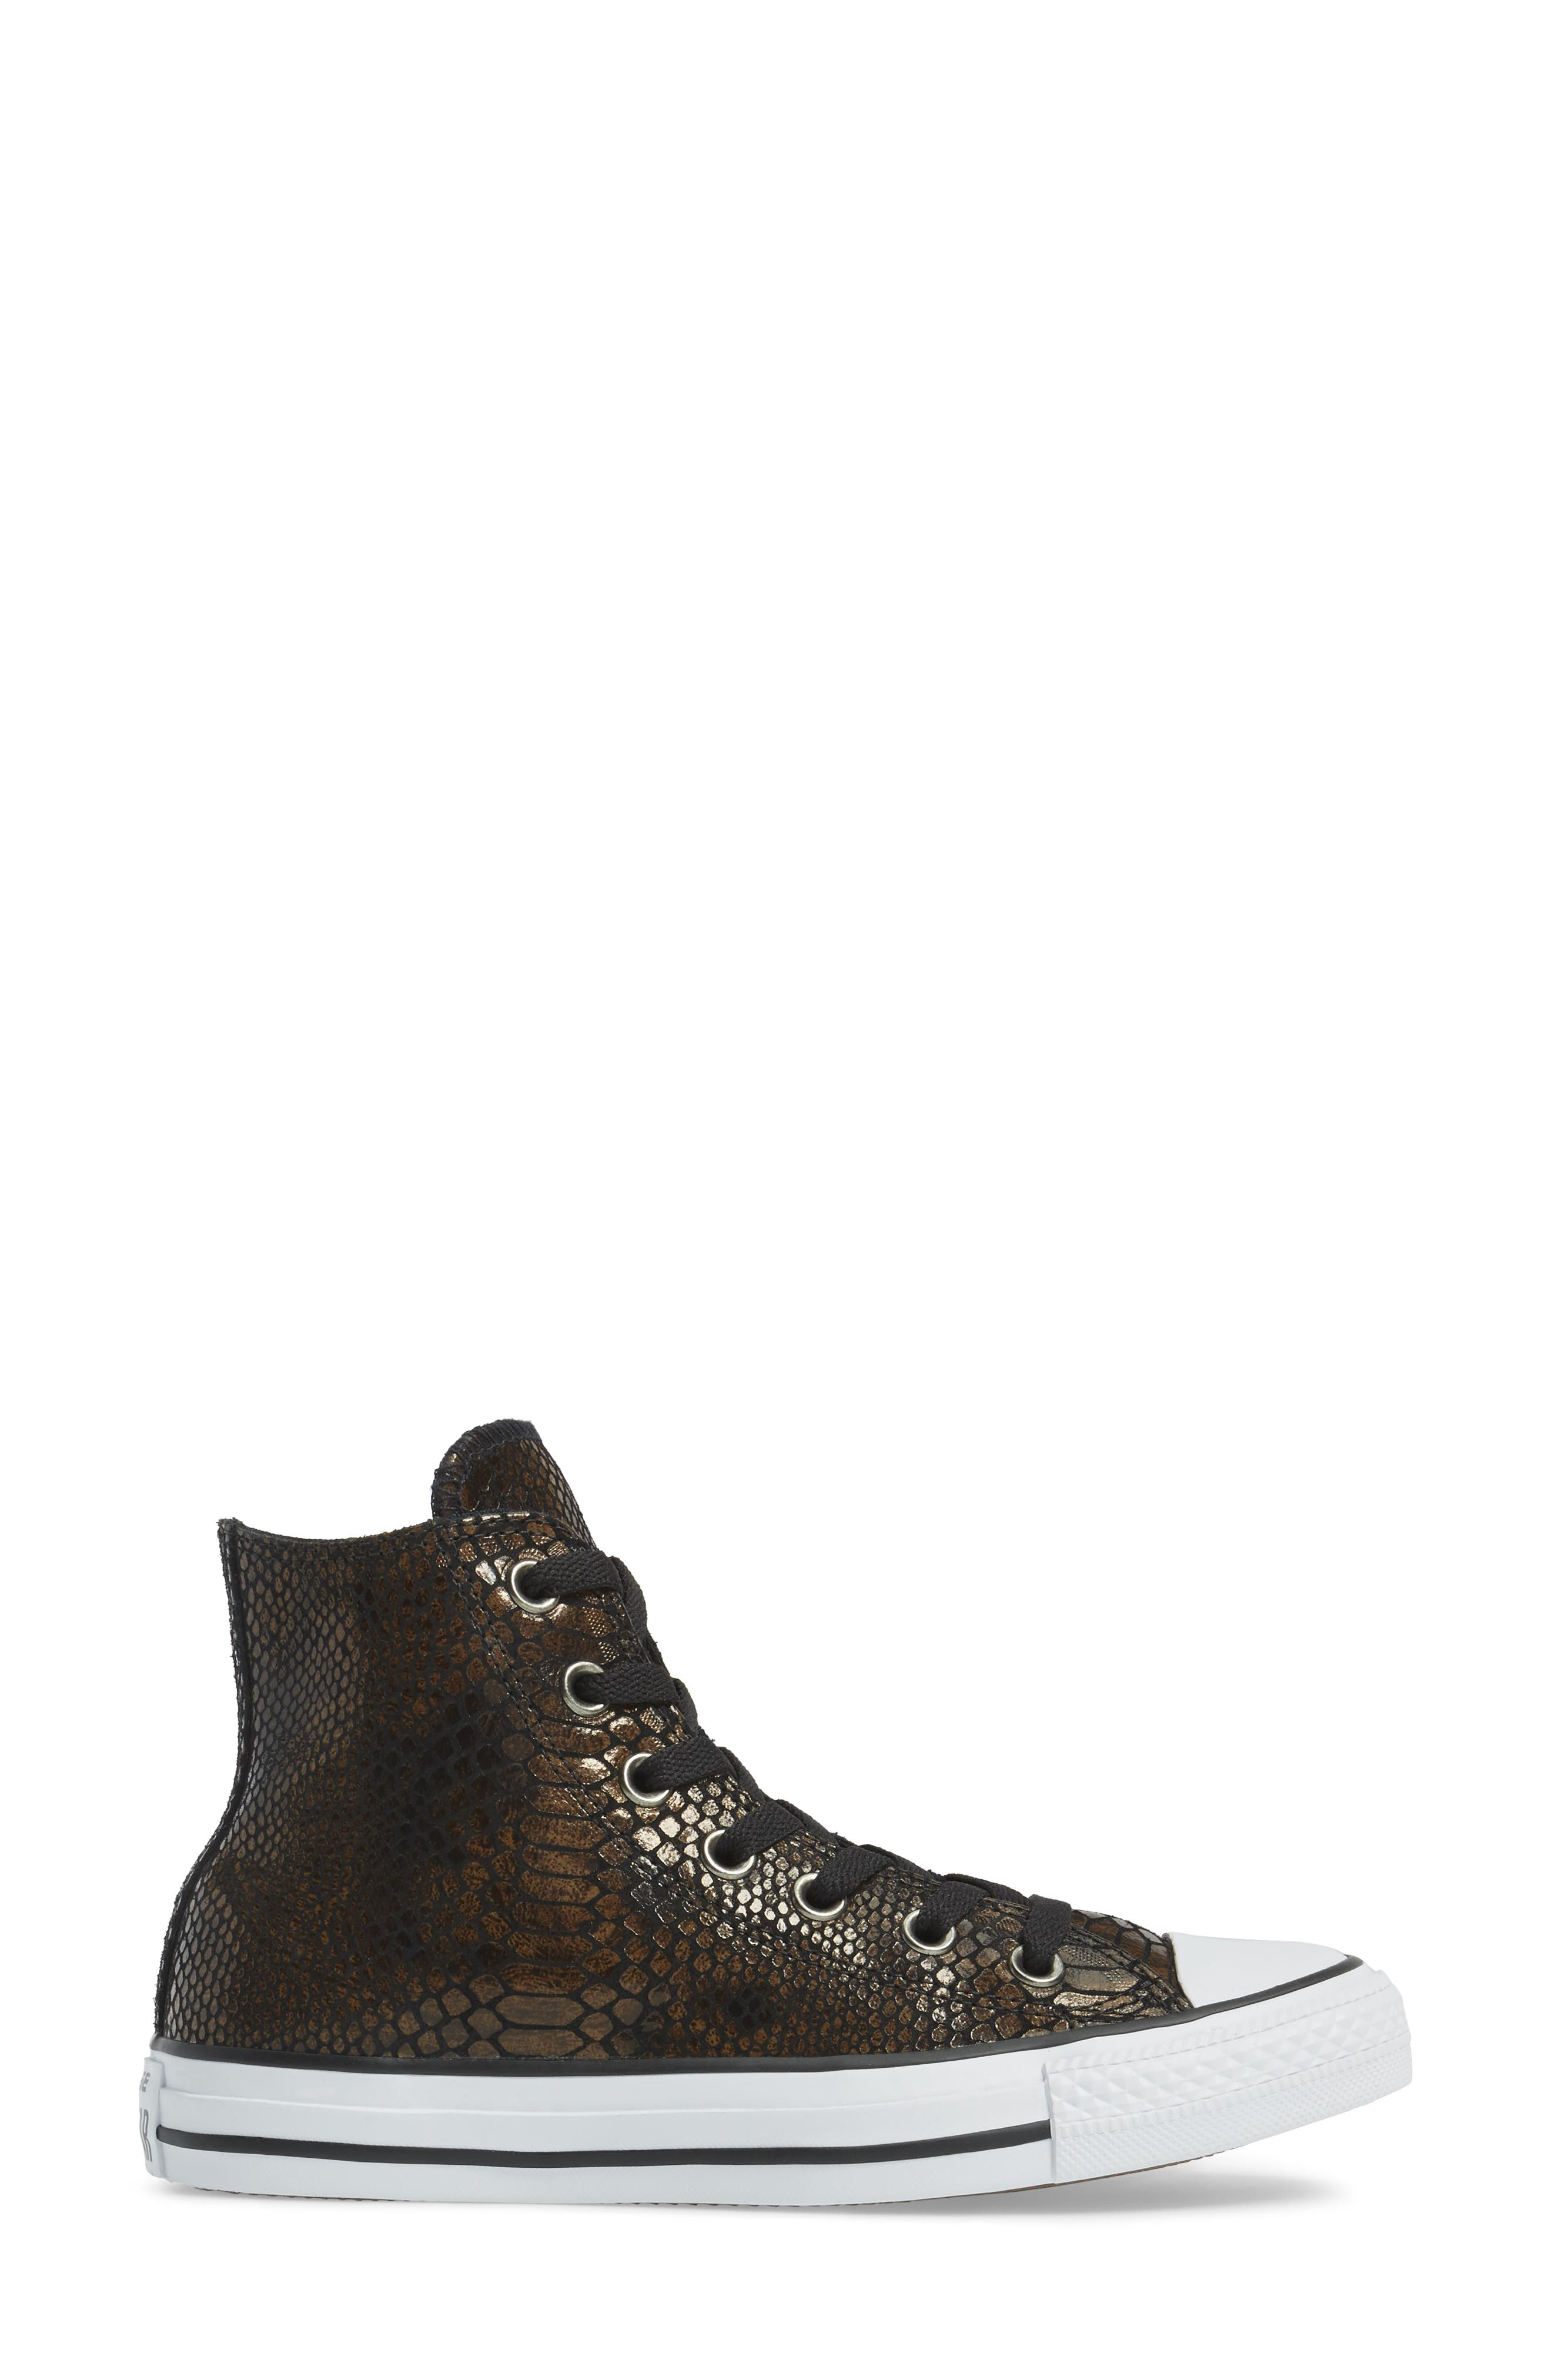 Chuck Taylor<sup>®</sup> All Star<sup>®</sup> Snake Embossed High Top Sneaker,                             Alternate thumbnail 3, color,                             200